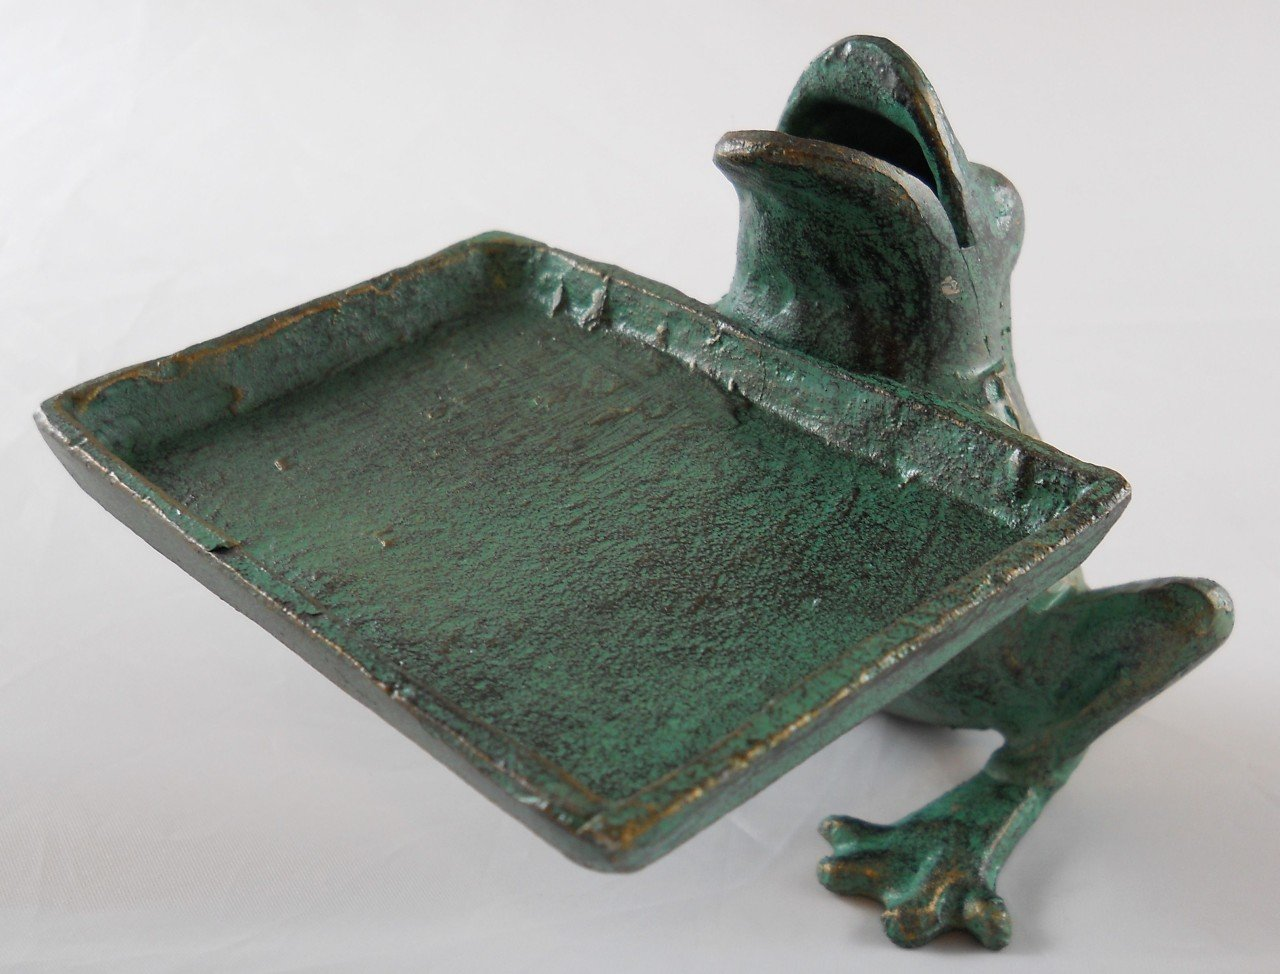 Amazon.com : Iron Frog Business Card Holder : Office Products